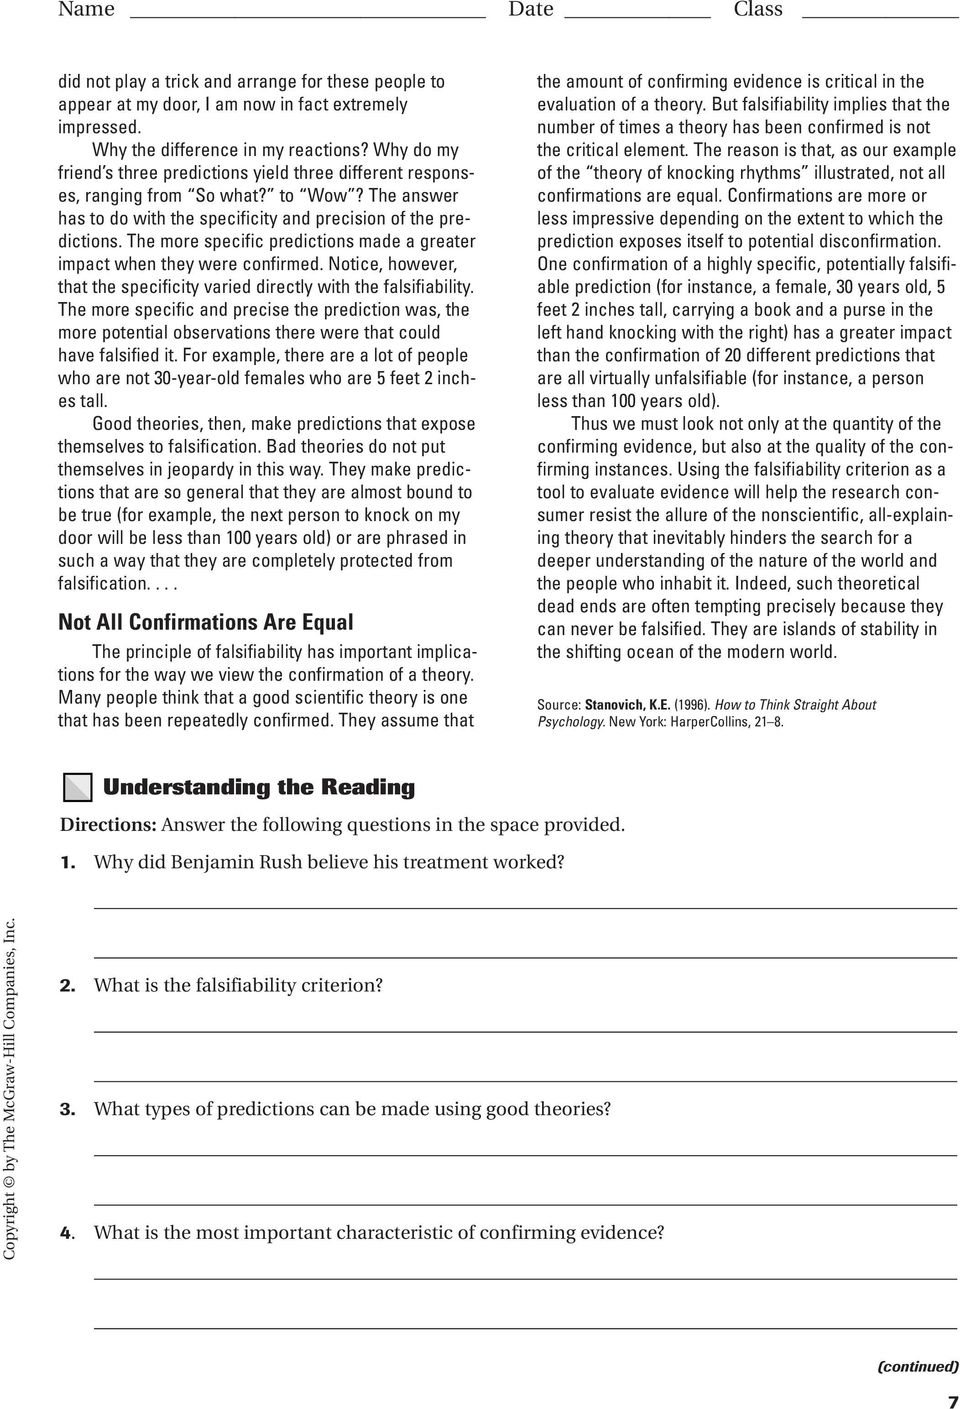 Essay On Newspaper With Quotations A Essay On The Holocaust